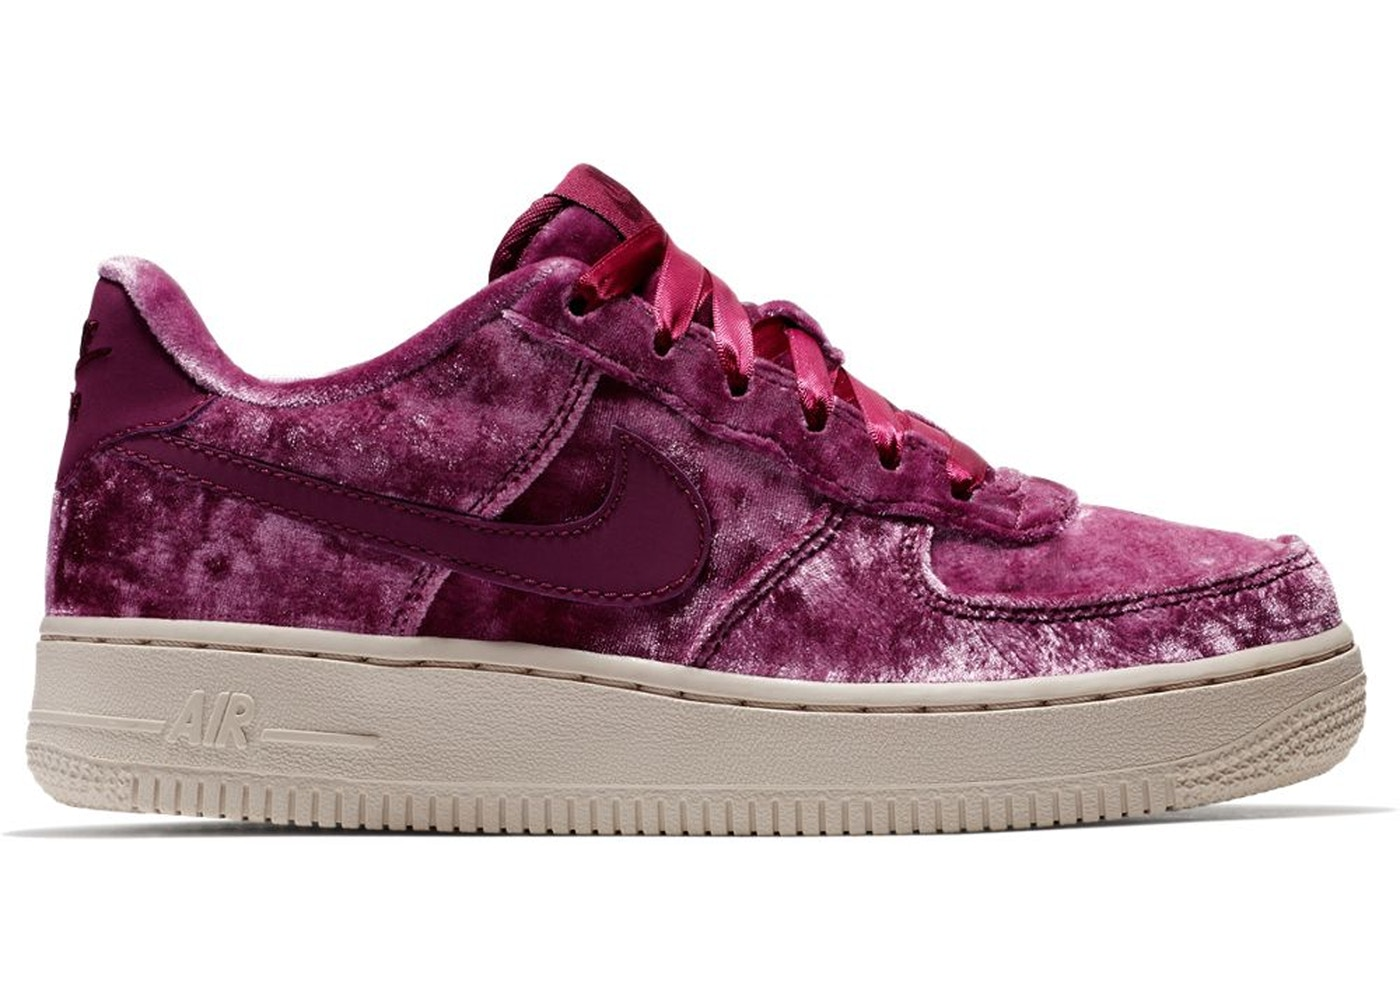 Nike Air Force 1 Low Crushed Velvet (GS) - 849345-601